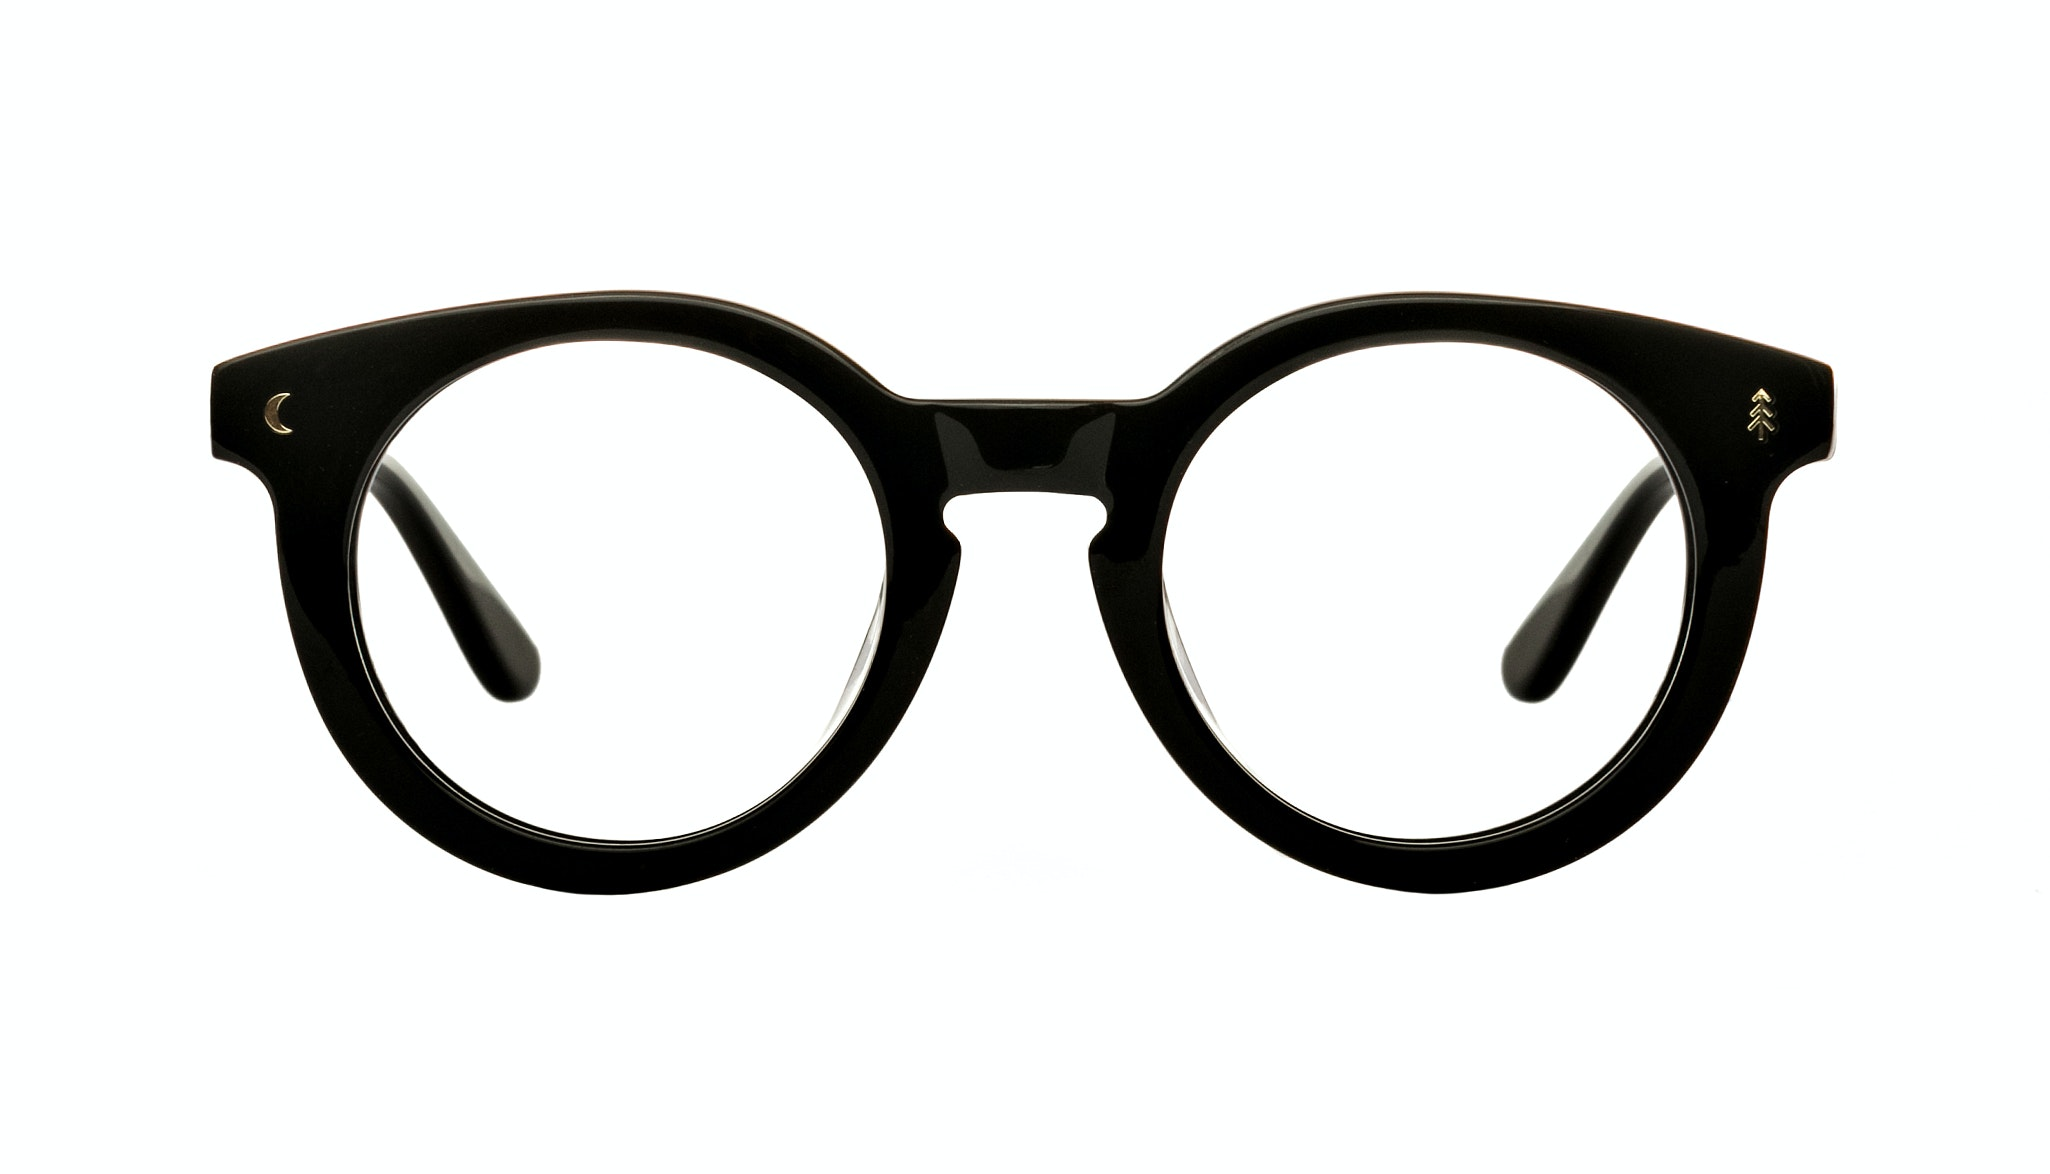 Affordable Fashion Glasses Round Eyeglasses Women Trailblazer Eclipse Black